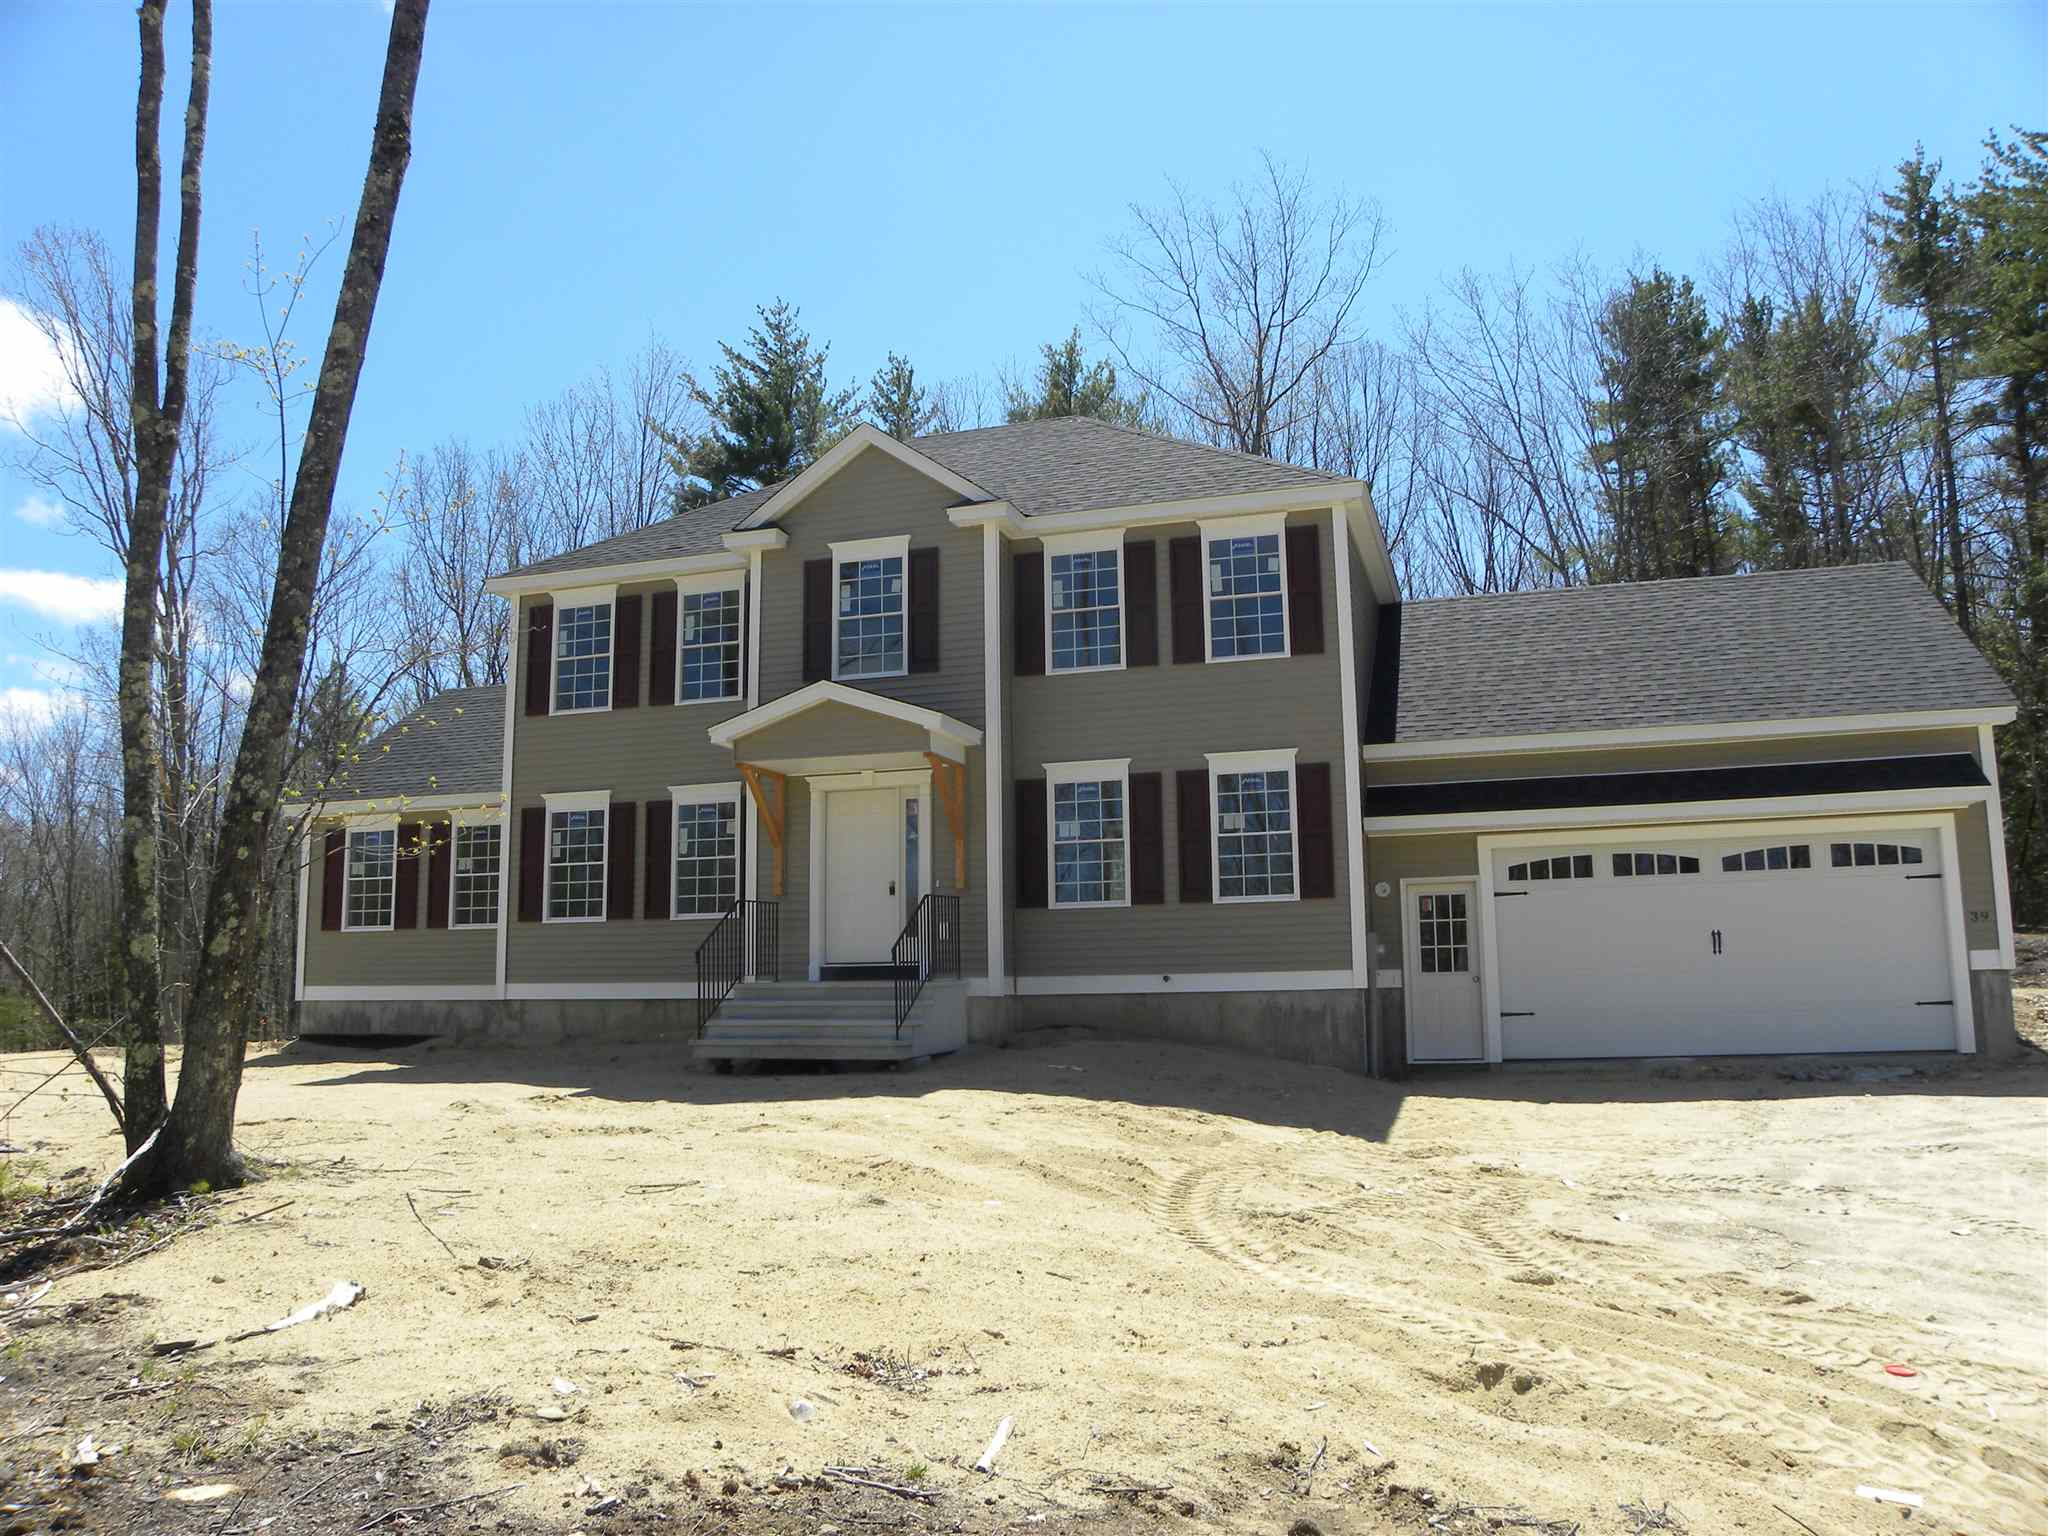 Photo of 39 Sandybrook Drive Raymond NH 03077